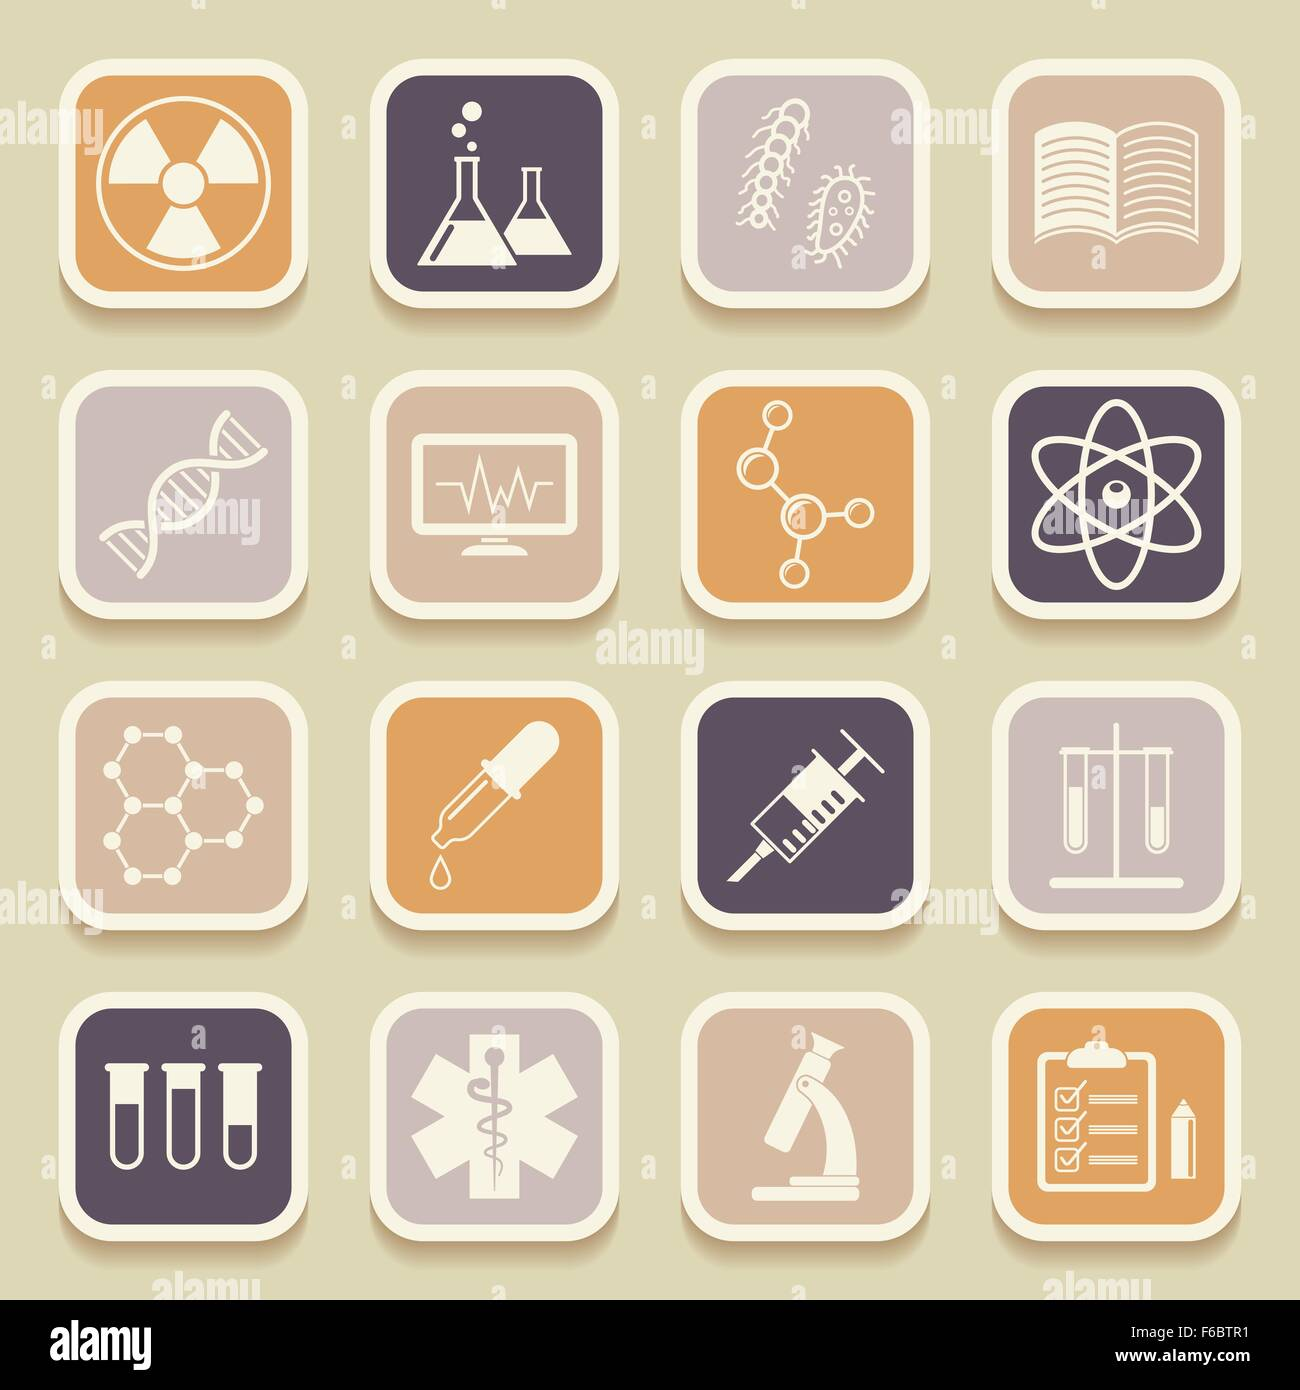 Science, medical and education universal icons for web and mobile applications. Vector illustration Stock Vector